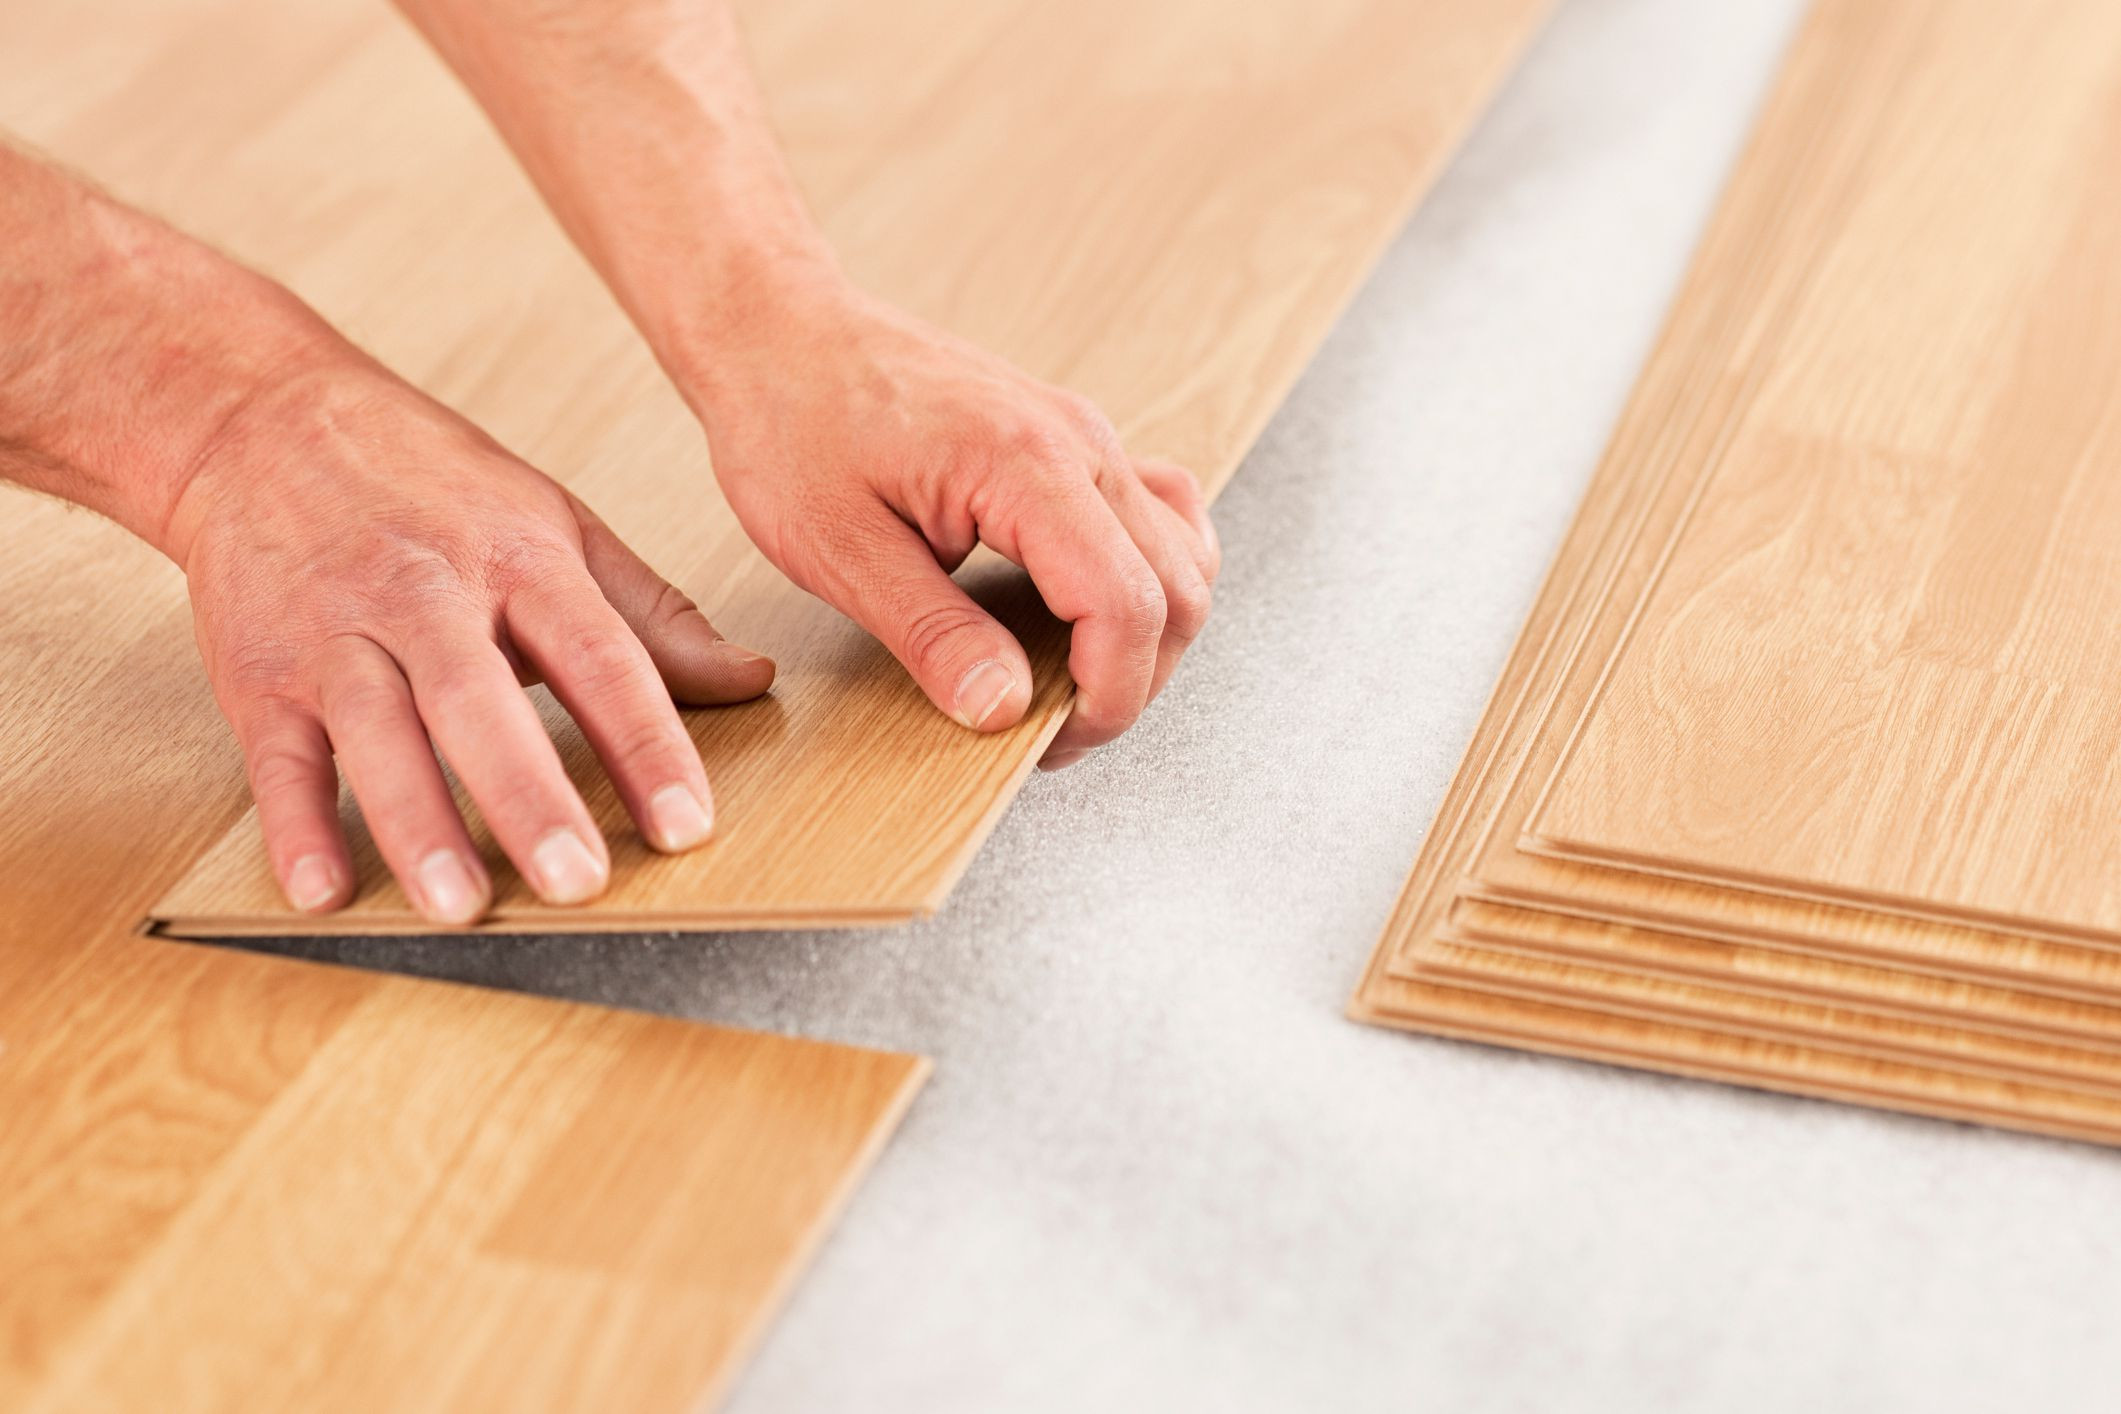 hardwood floor filler home depot of laminate underlayment pros and cons in laminate floor install gettyimages 154961561 588816495f9b58bdb3da1a02